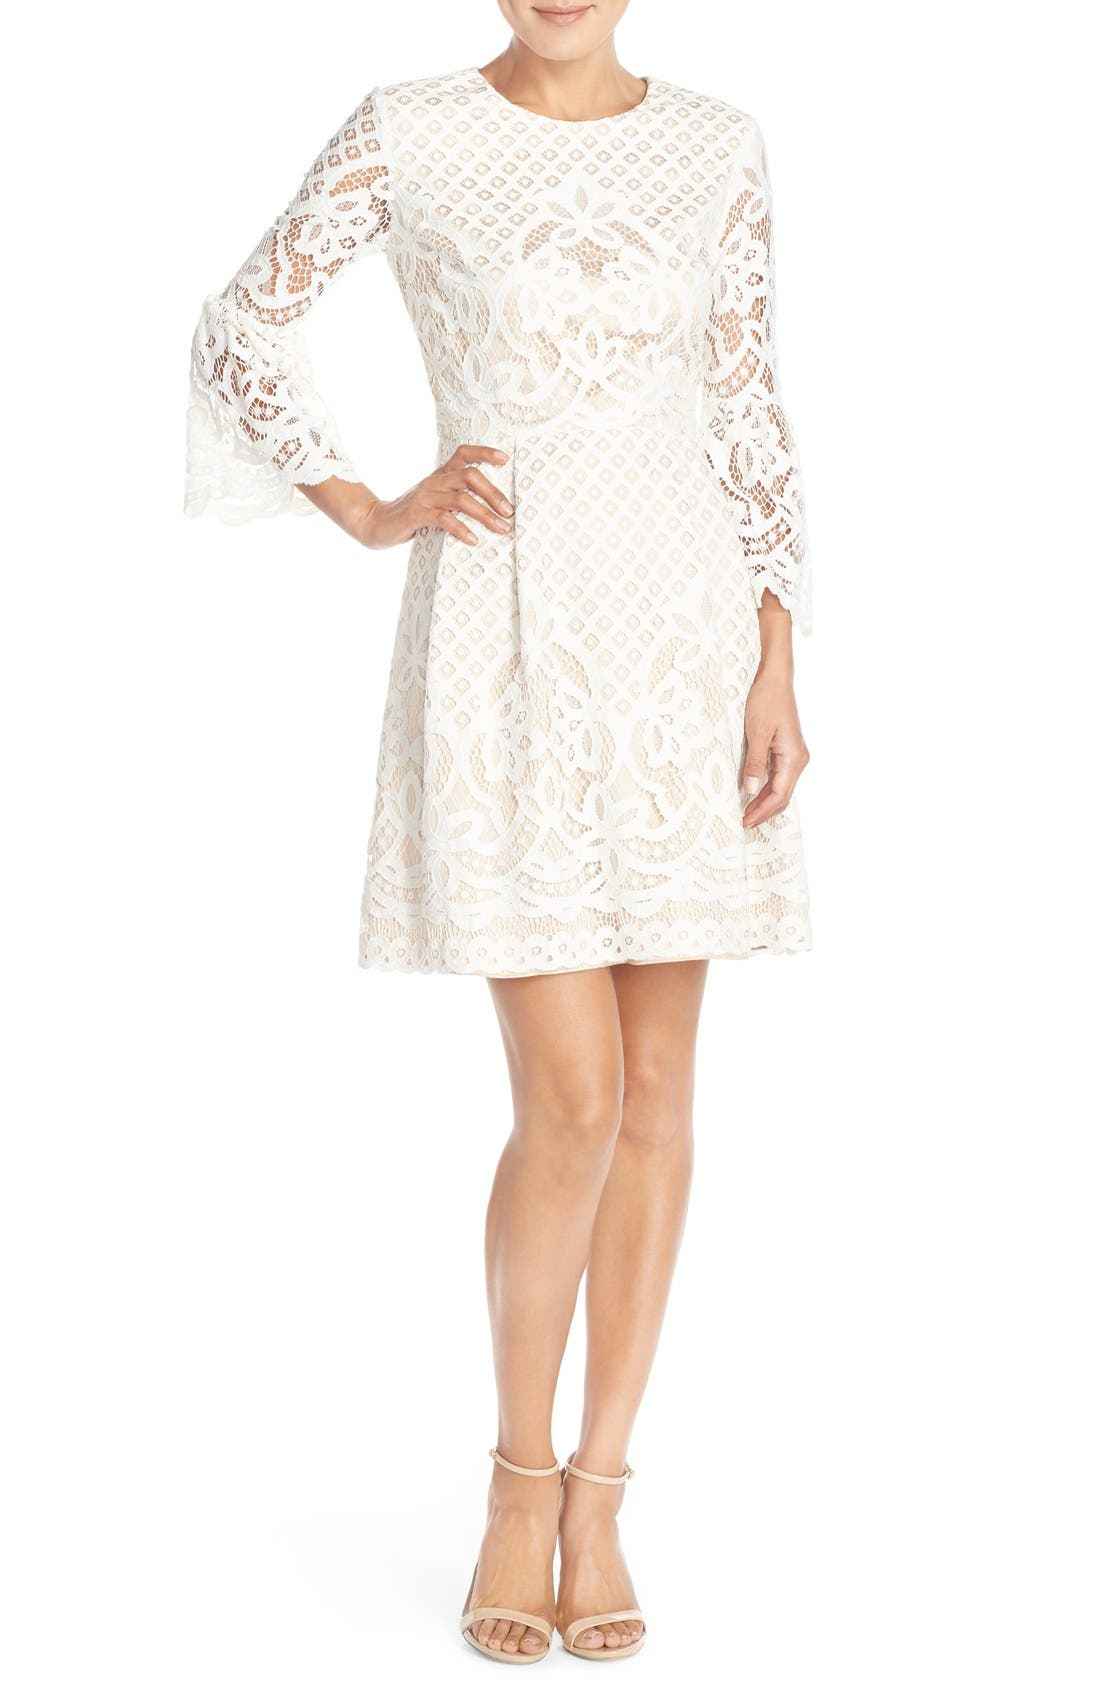 Bell Sleeve Fit & Flare Dress,                             Alternate thumbnail 10, color,                             IVORY